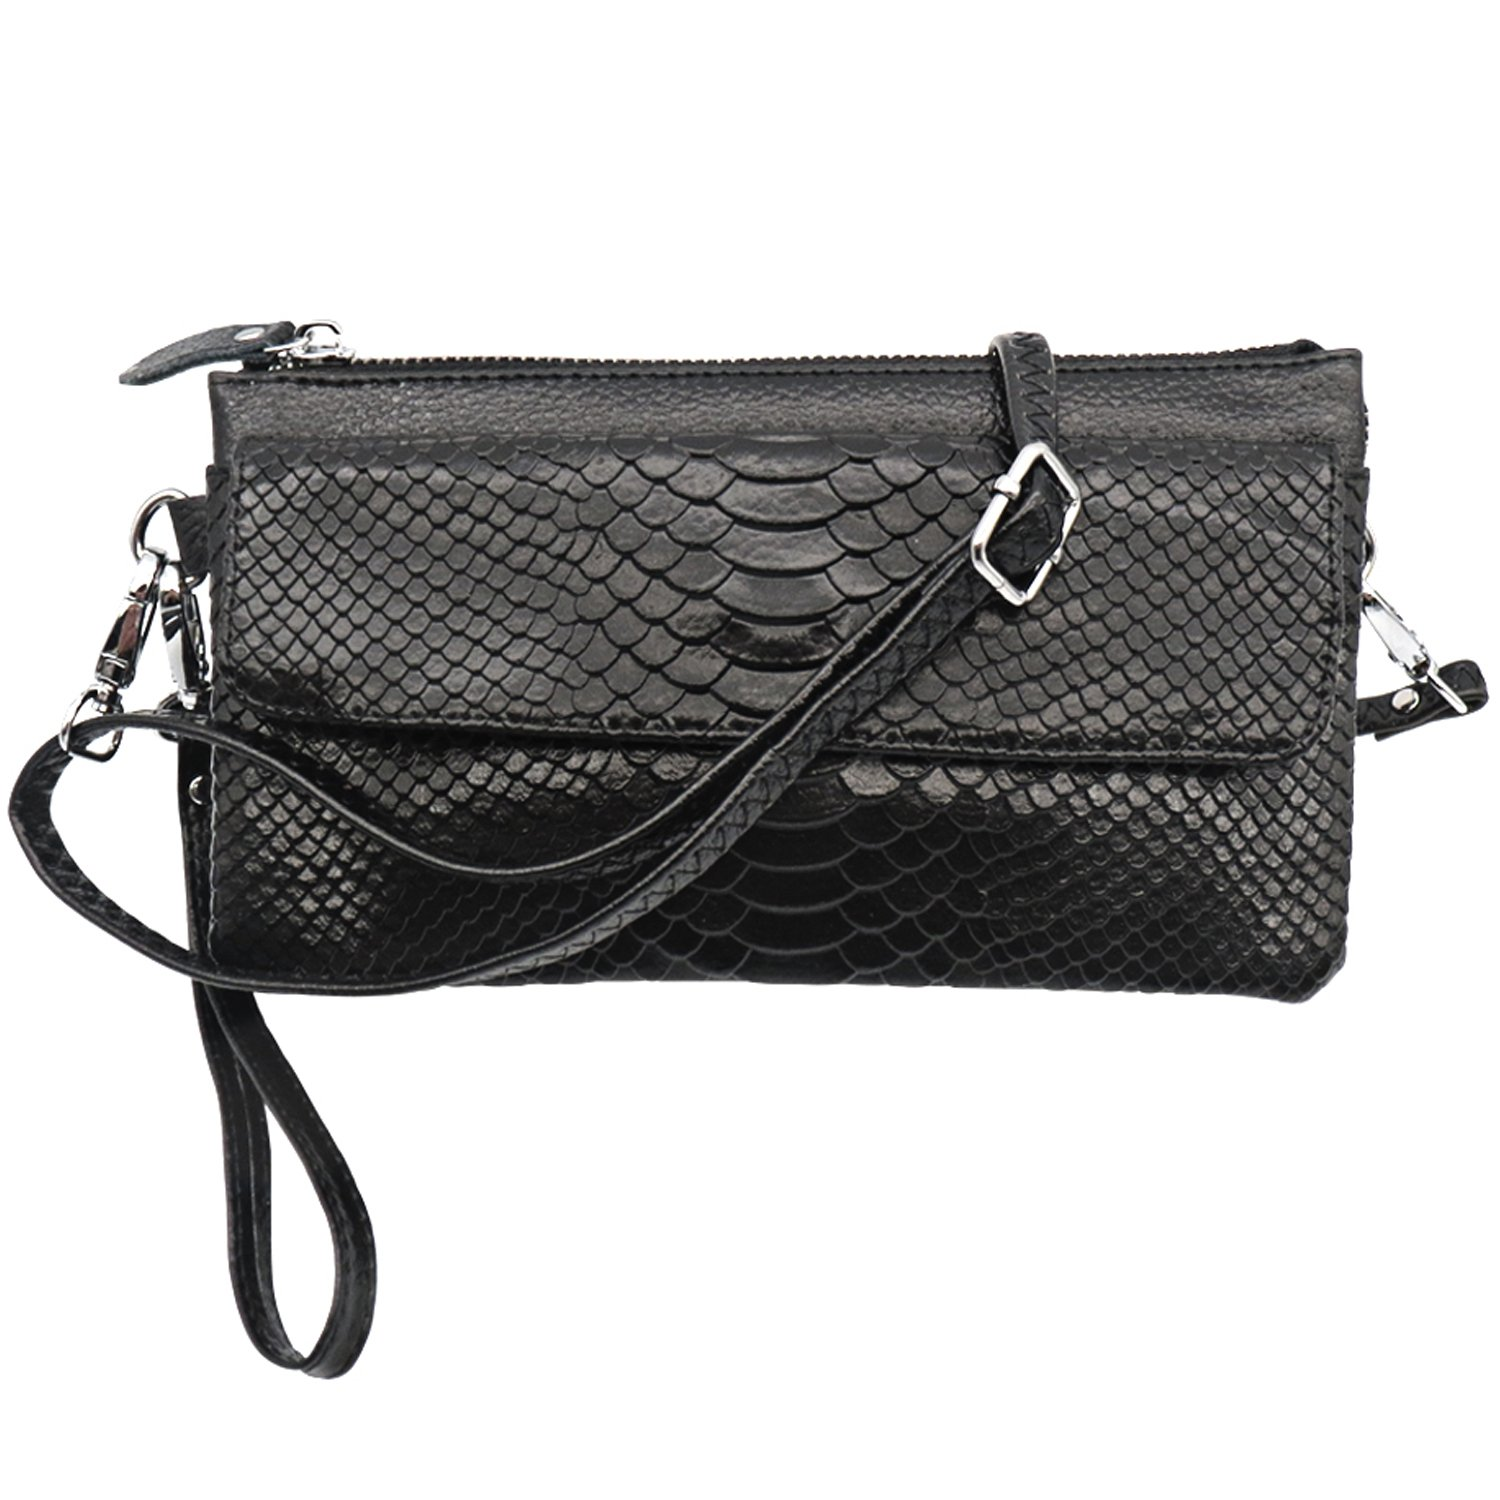 Shalwinn Crossbody Purse Cell Phone Purse Genuine Leather Crossbody Purse Cell Phone Purse Crossbody Handbag Purse for Women Girls with Adjustable Long Shoulder Strap and Wrist Strap (886#Black)